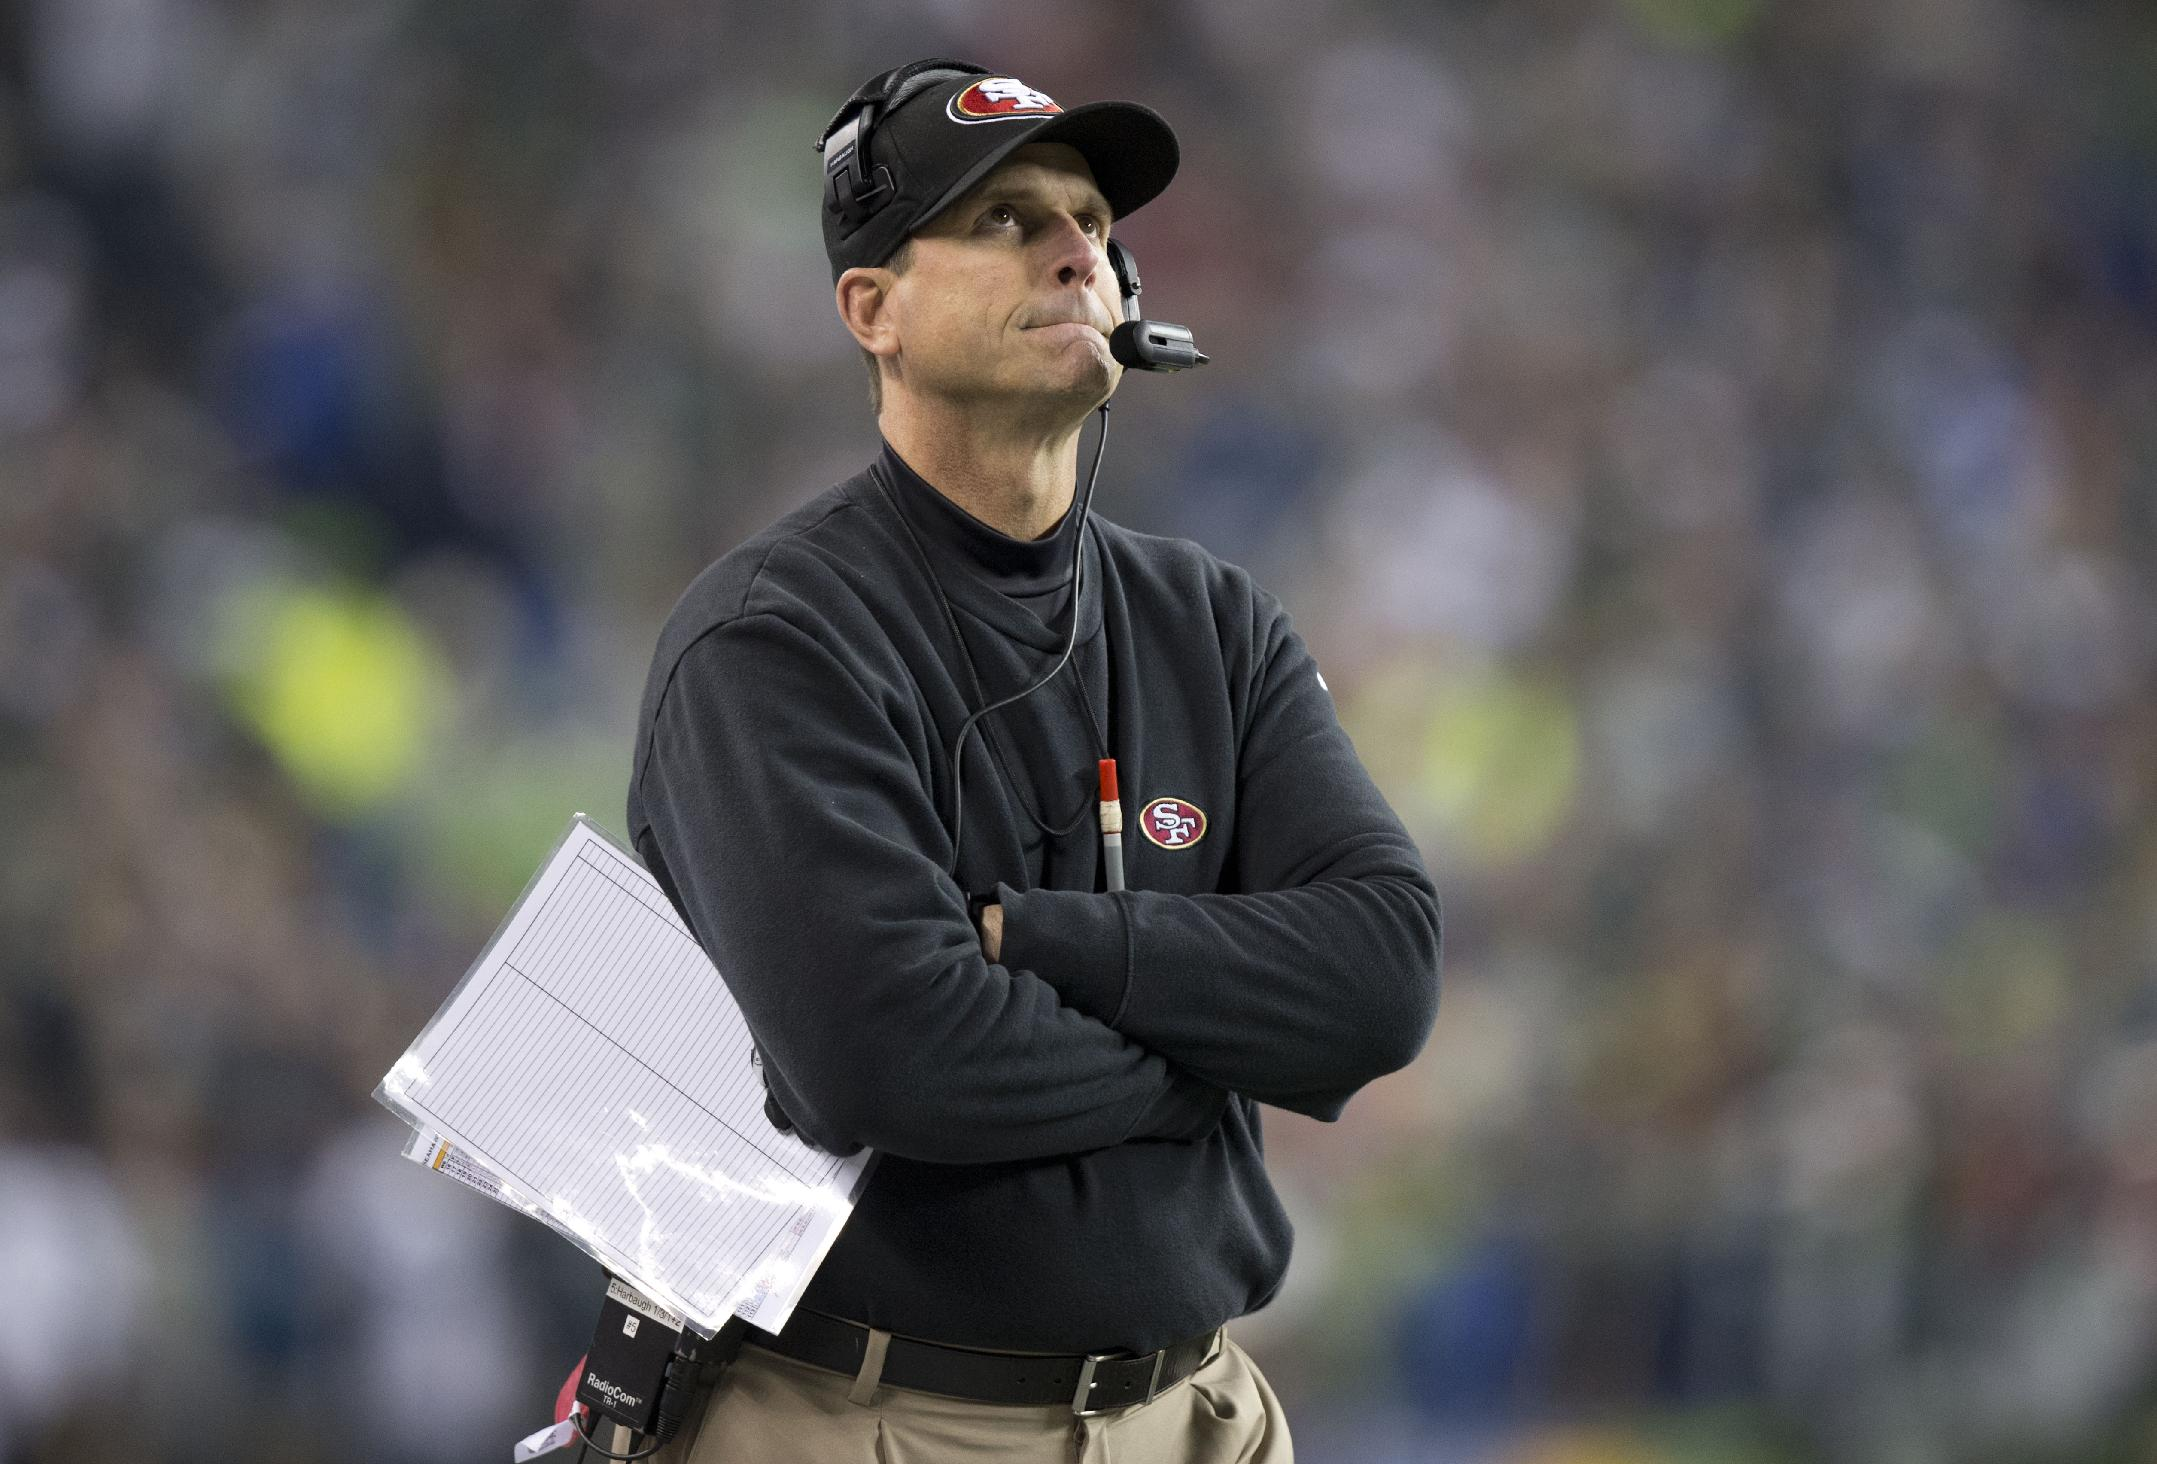 Jim Harbaugh 49ers head coach looks at the scoreboard as the Seahawks go to a 23-17 victory during the NFC championship game between the San Francisco 49ers and the Seattle Seahawks at CenturyLink Field in Seattle, Wash. on Sunday, Jan. 19, 2014